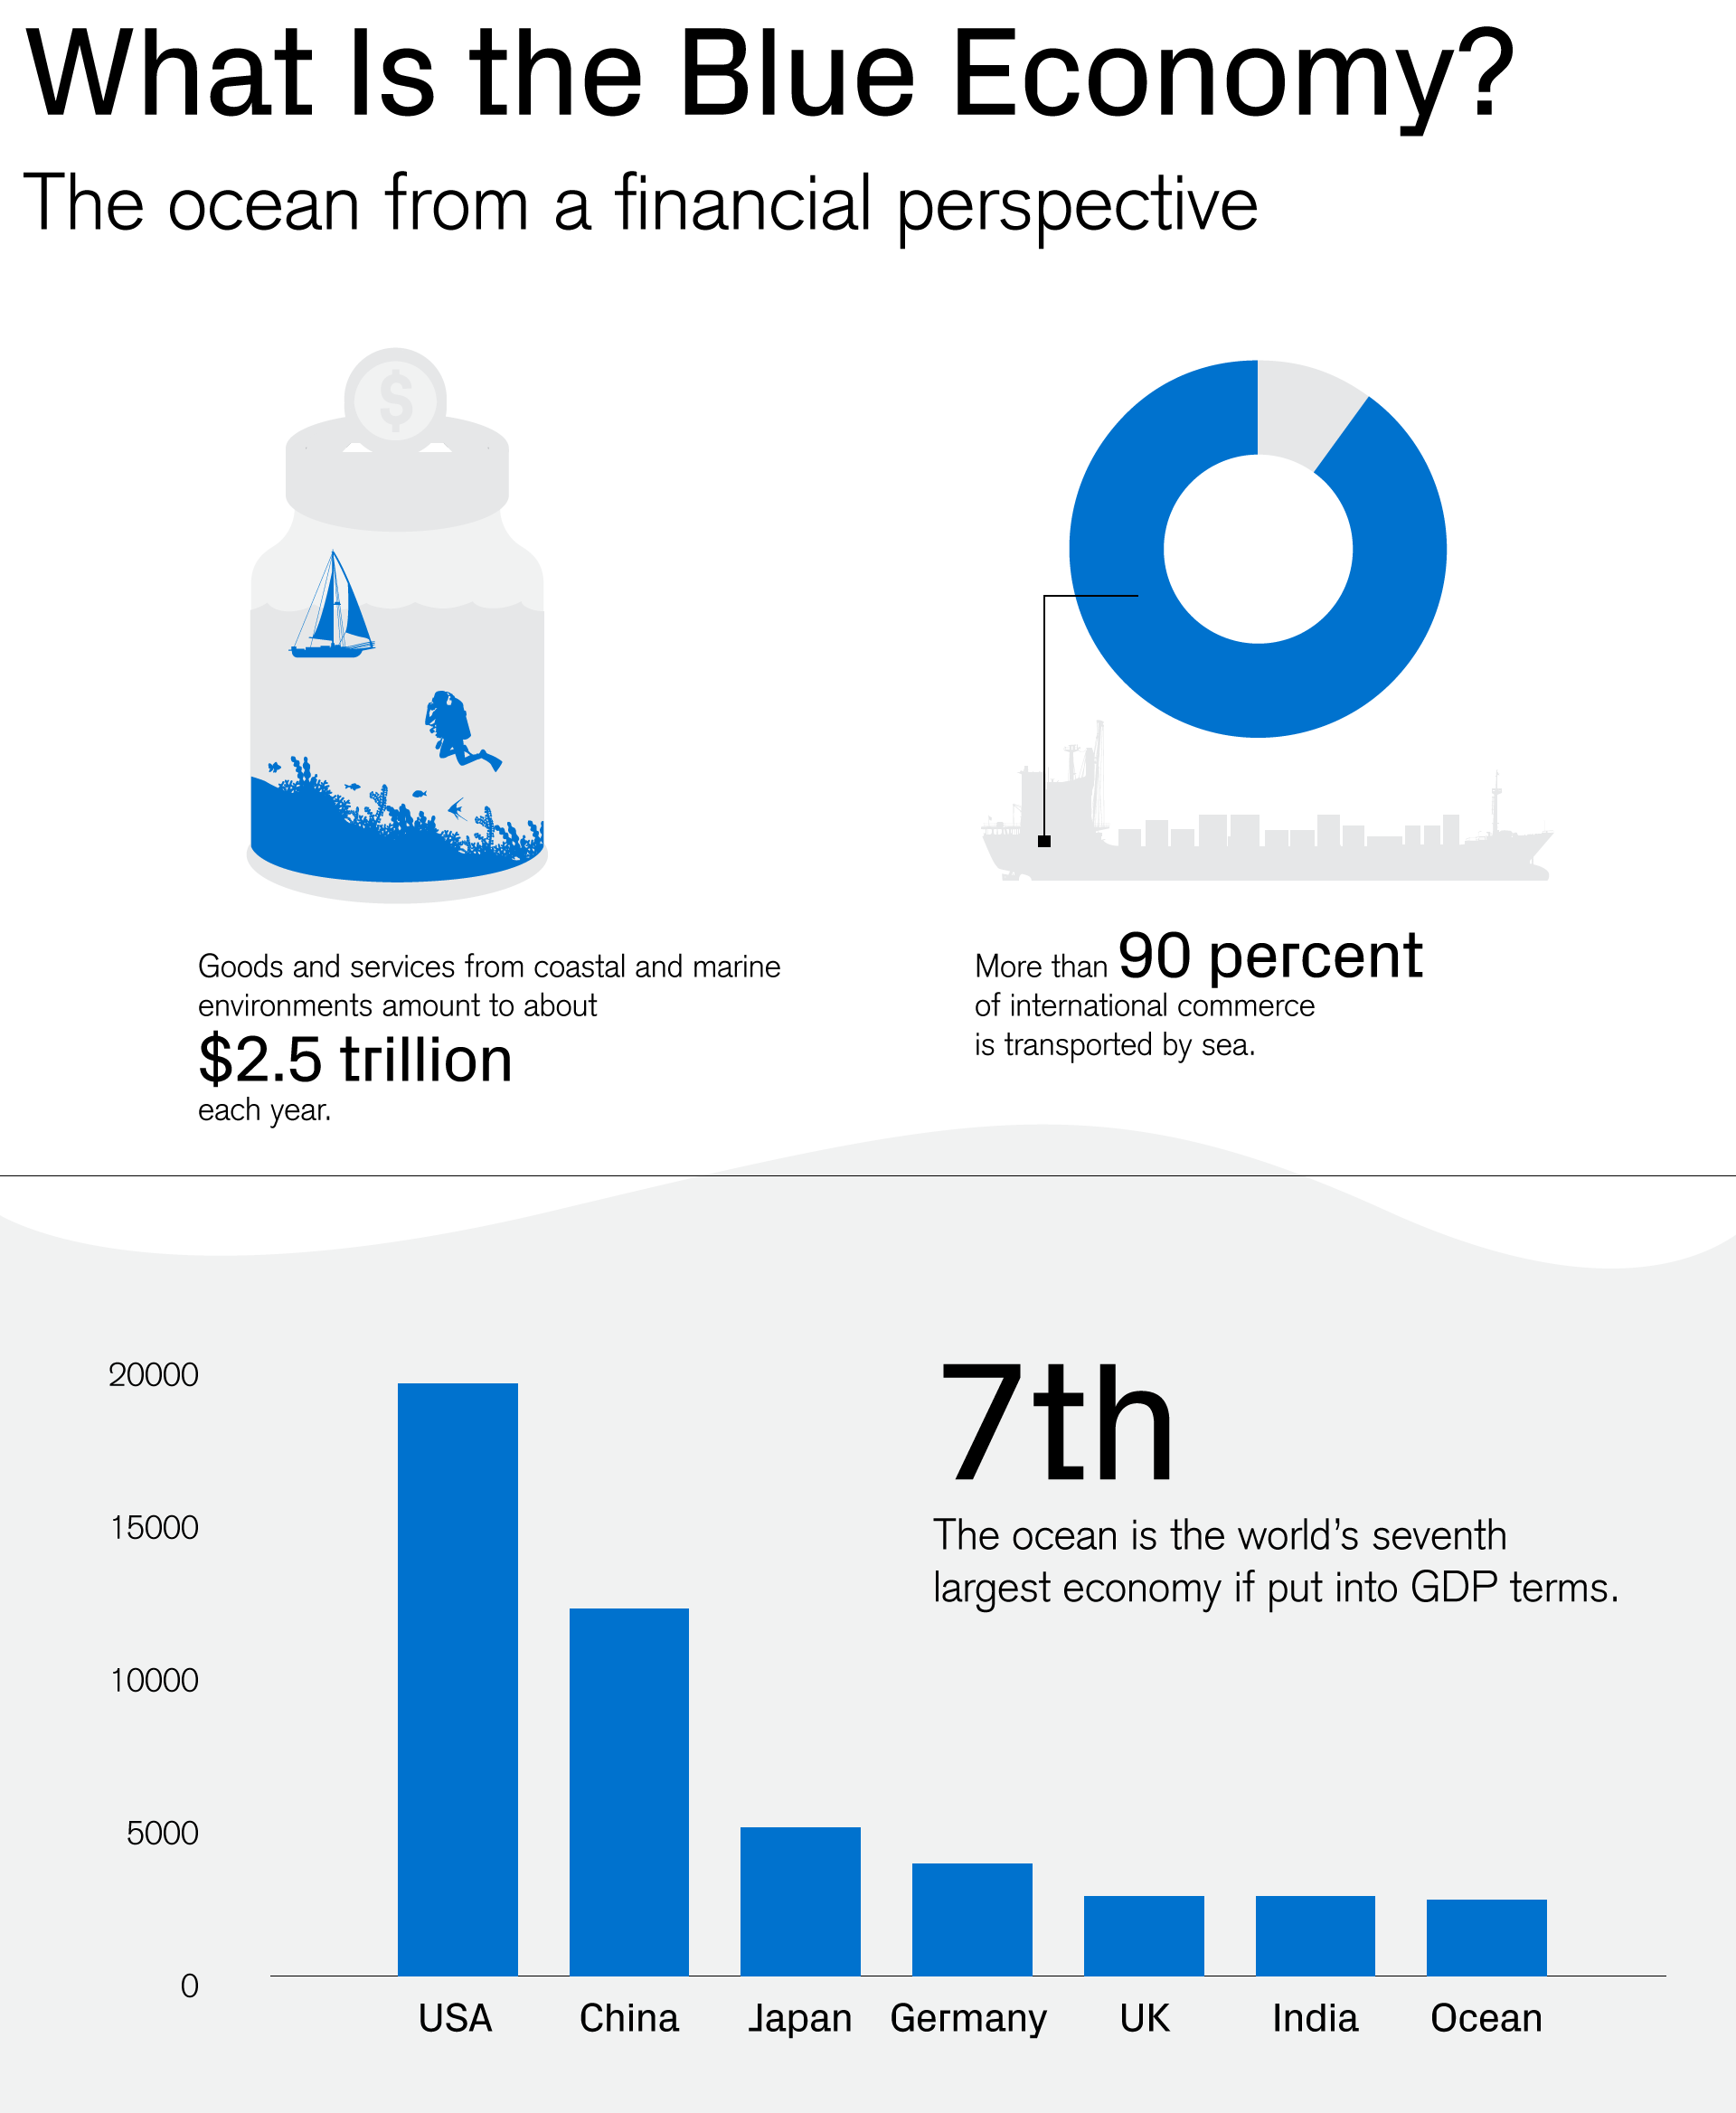 What is the Blue Economy? The ocean from the financial perspective